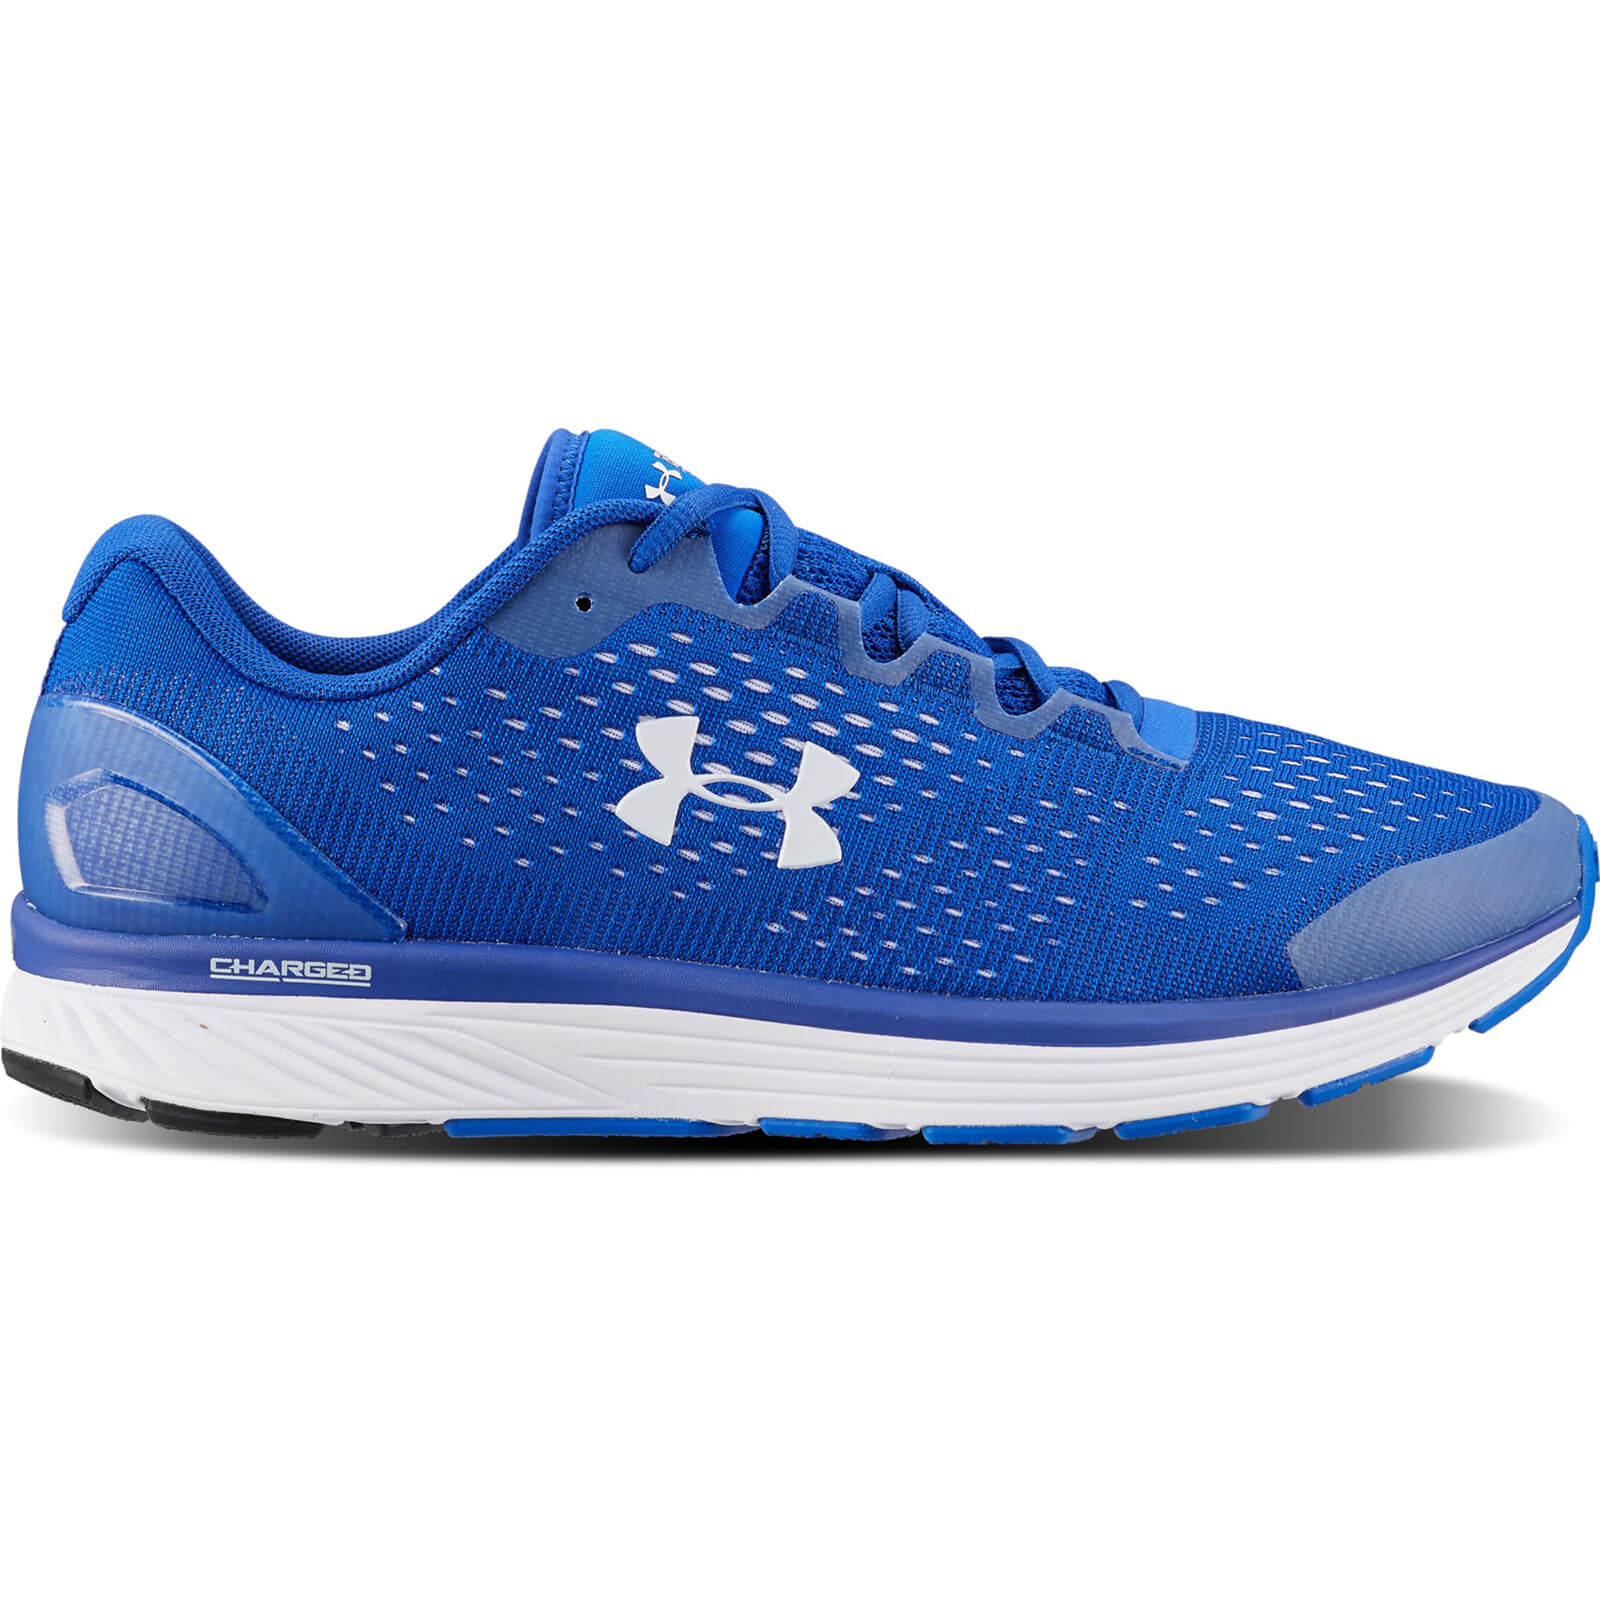 e08e01a0508 Under Armour Men s Charged Bandit 4 Team Running Shoes - Blue ...